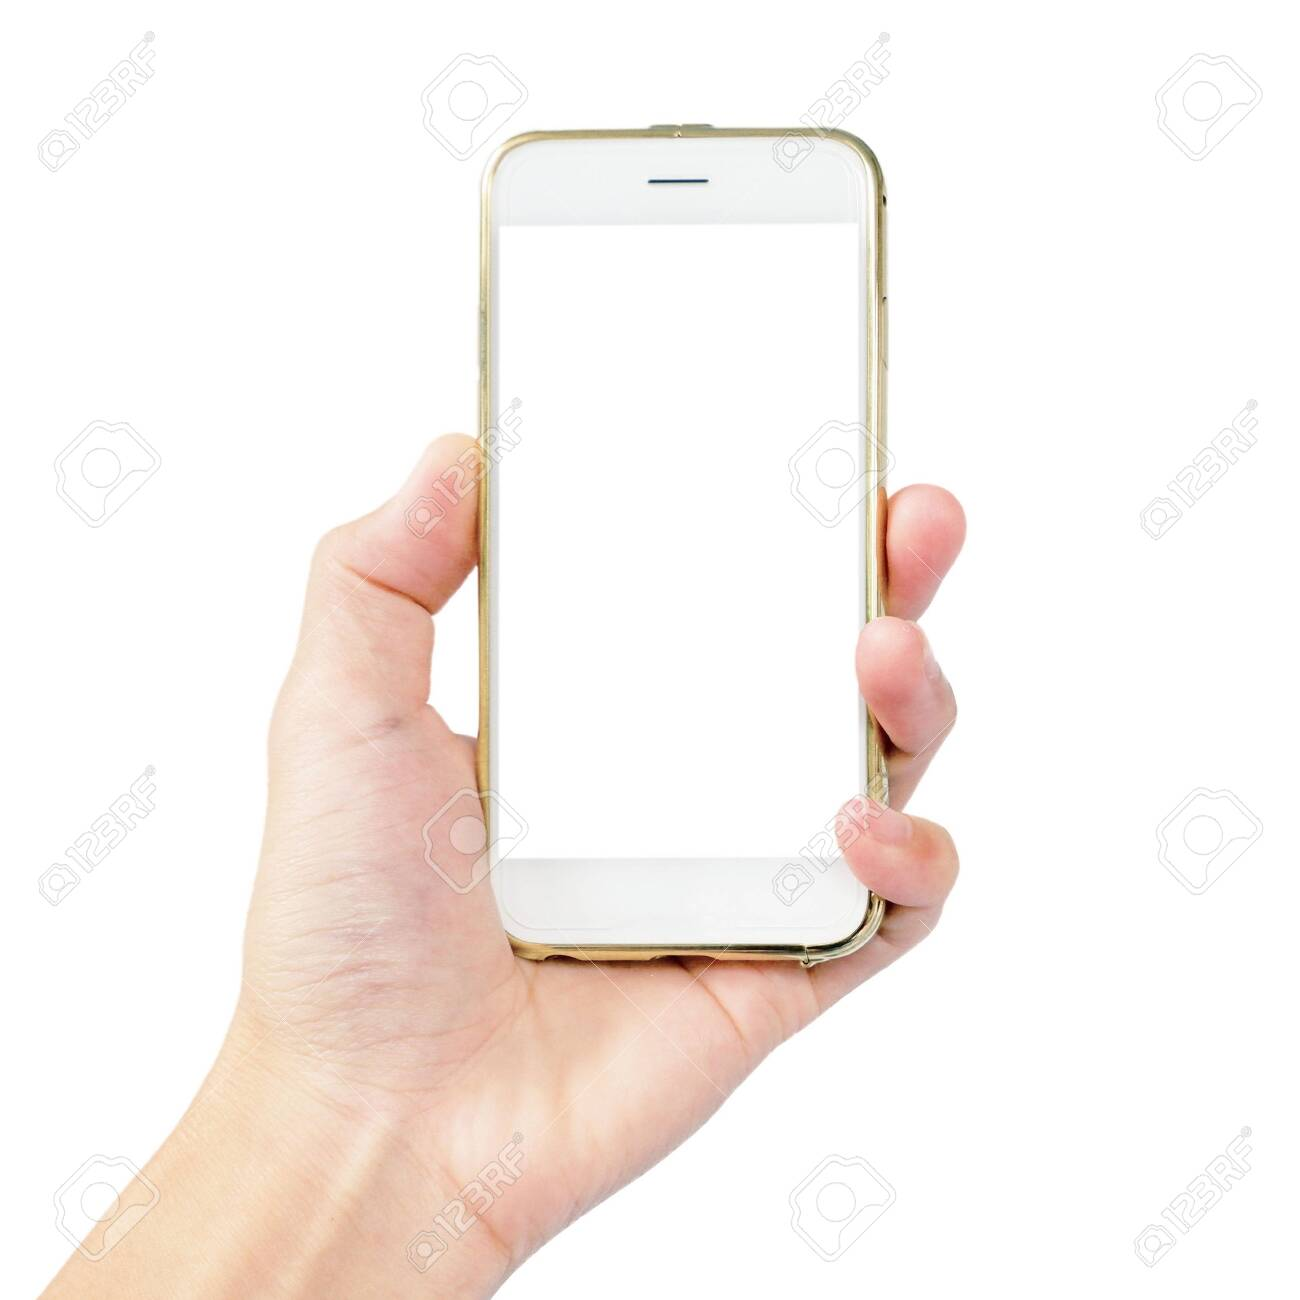 left hand is hold smartphone with gold case isolated on white background - 150882400